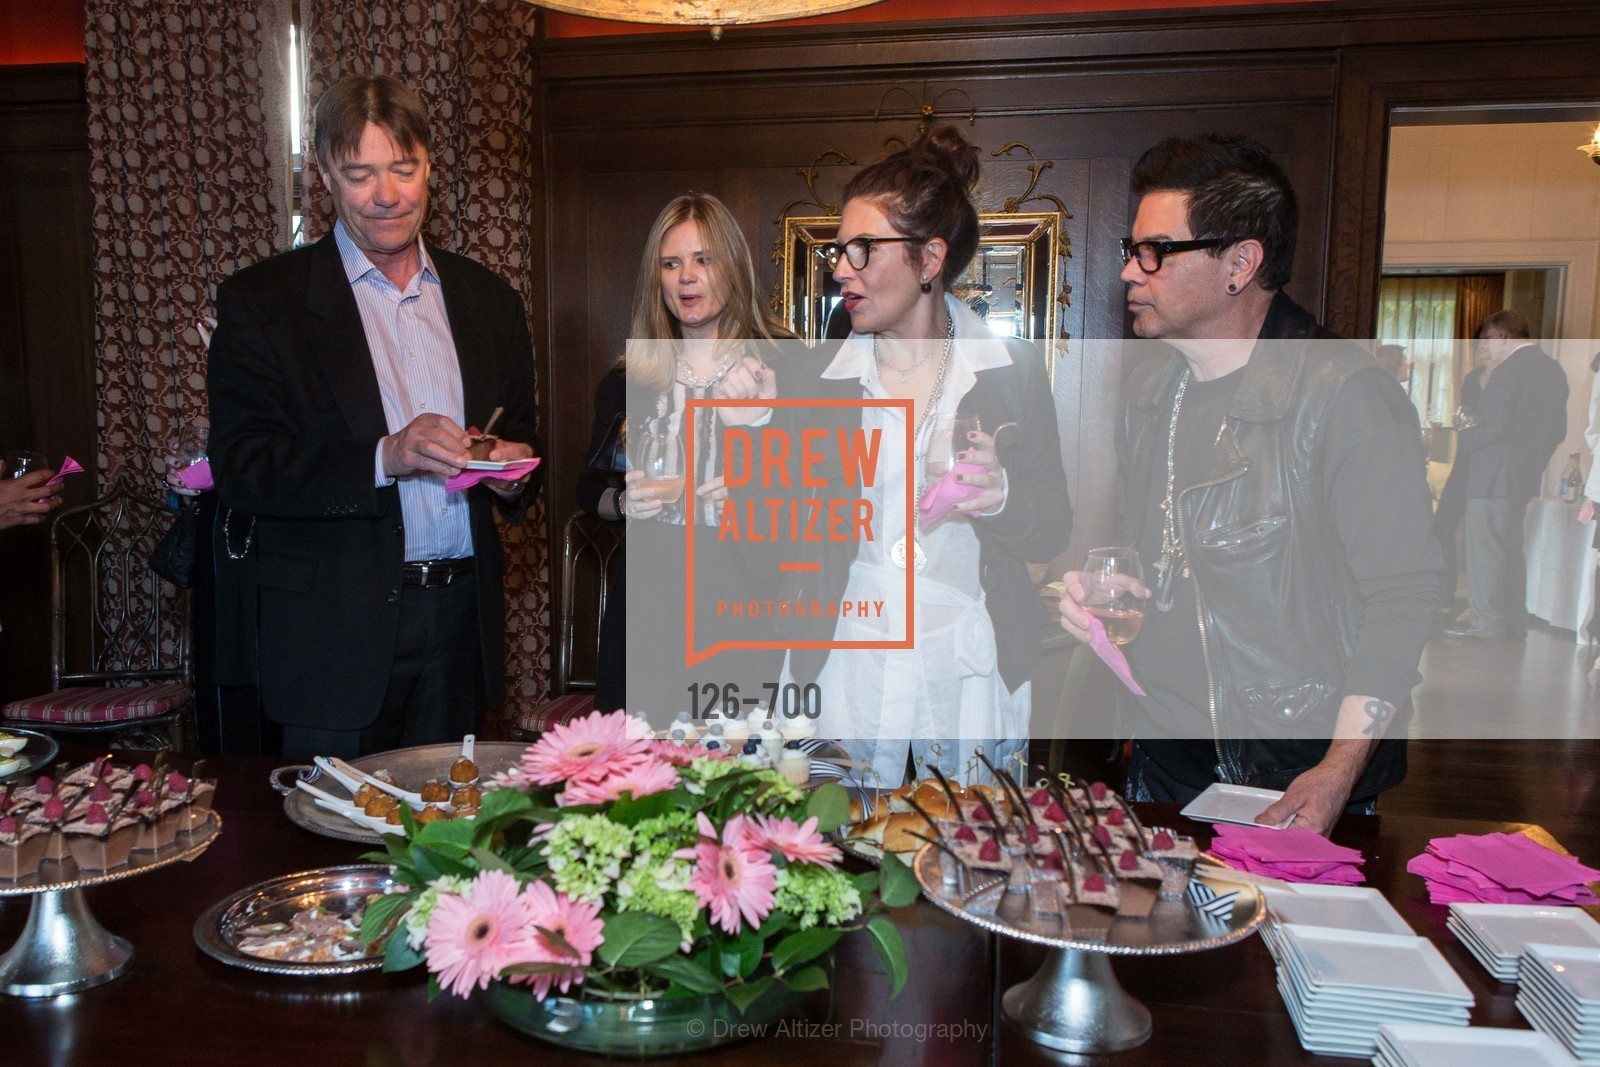 David Reposar, SUKEY FORBES' Book Signing, US, May 7th, 2015,Drew Altizer, Drew Altizer Photography, full-service agency, private events, San Francisco photographer, photographer california